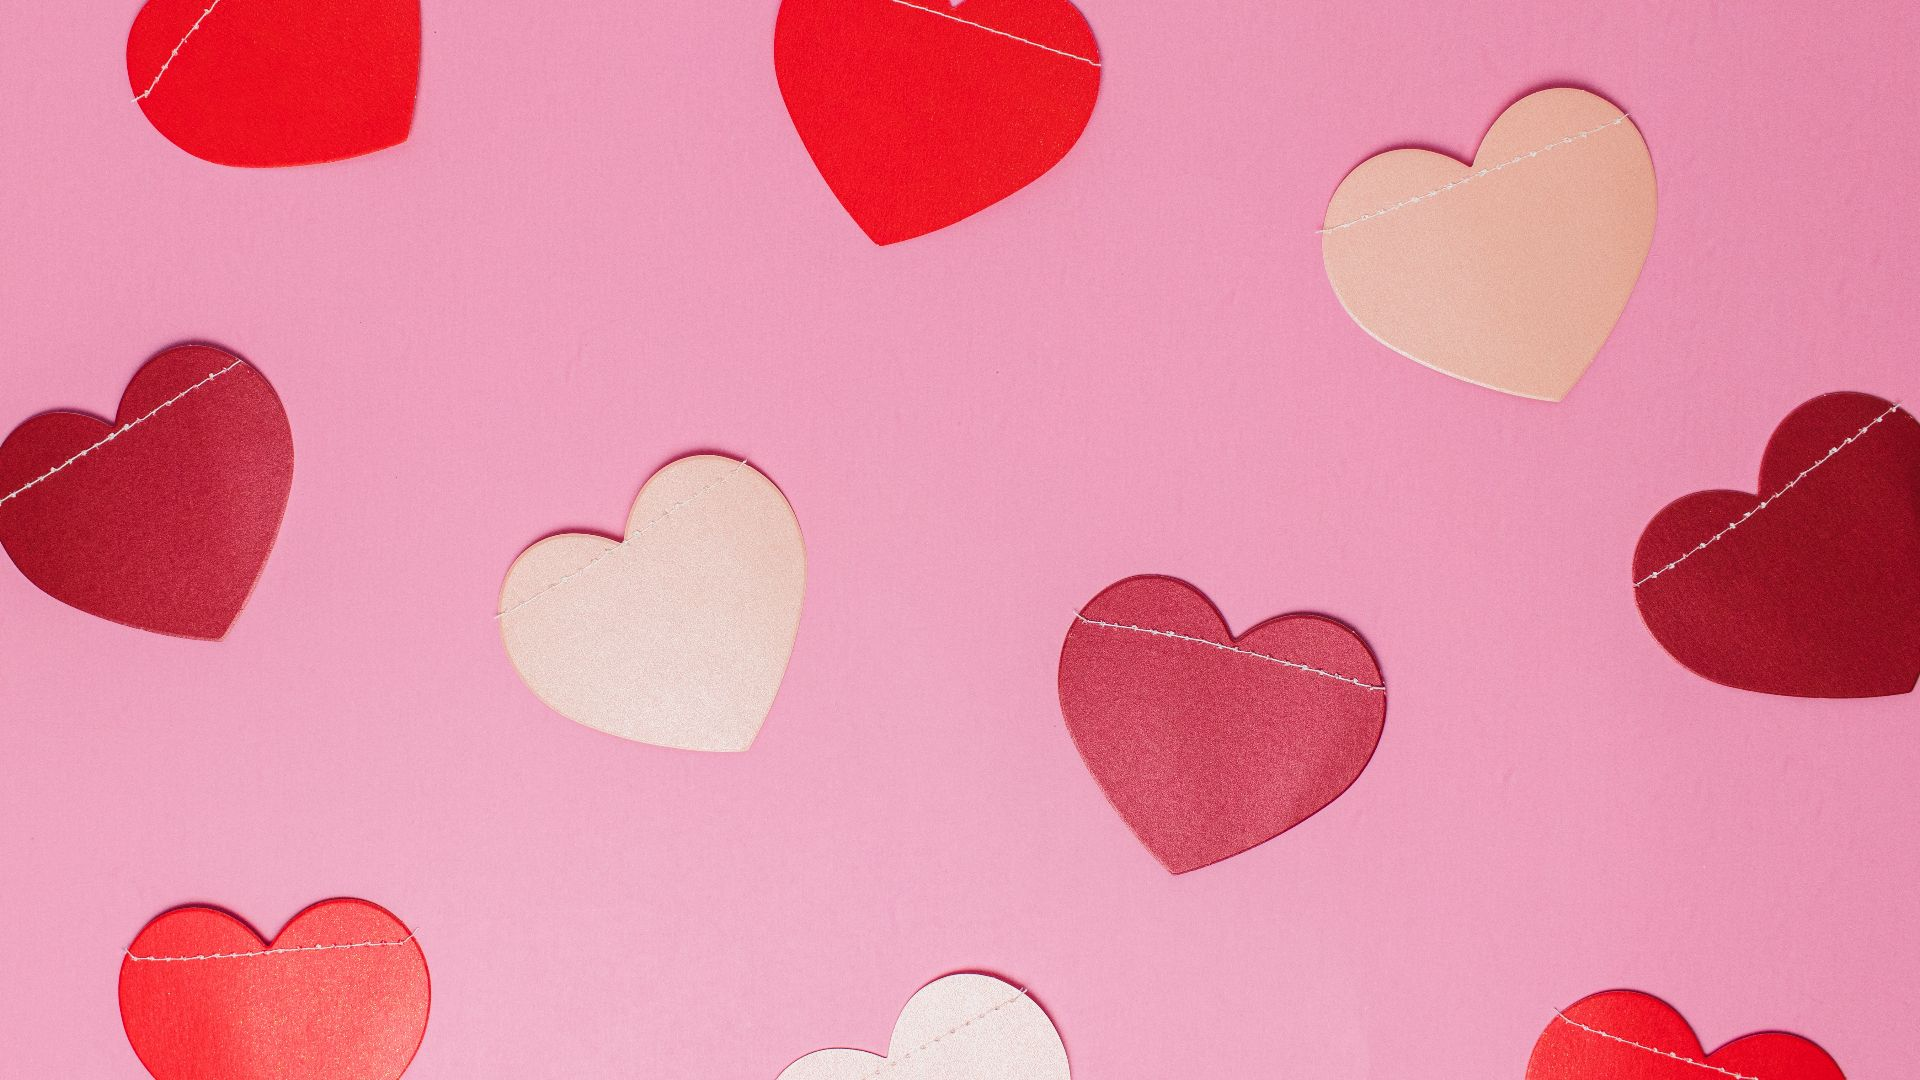 pink background with hearts in various shades of red